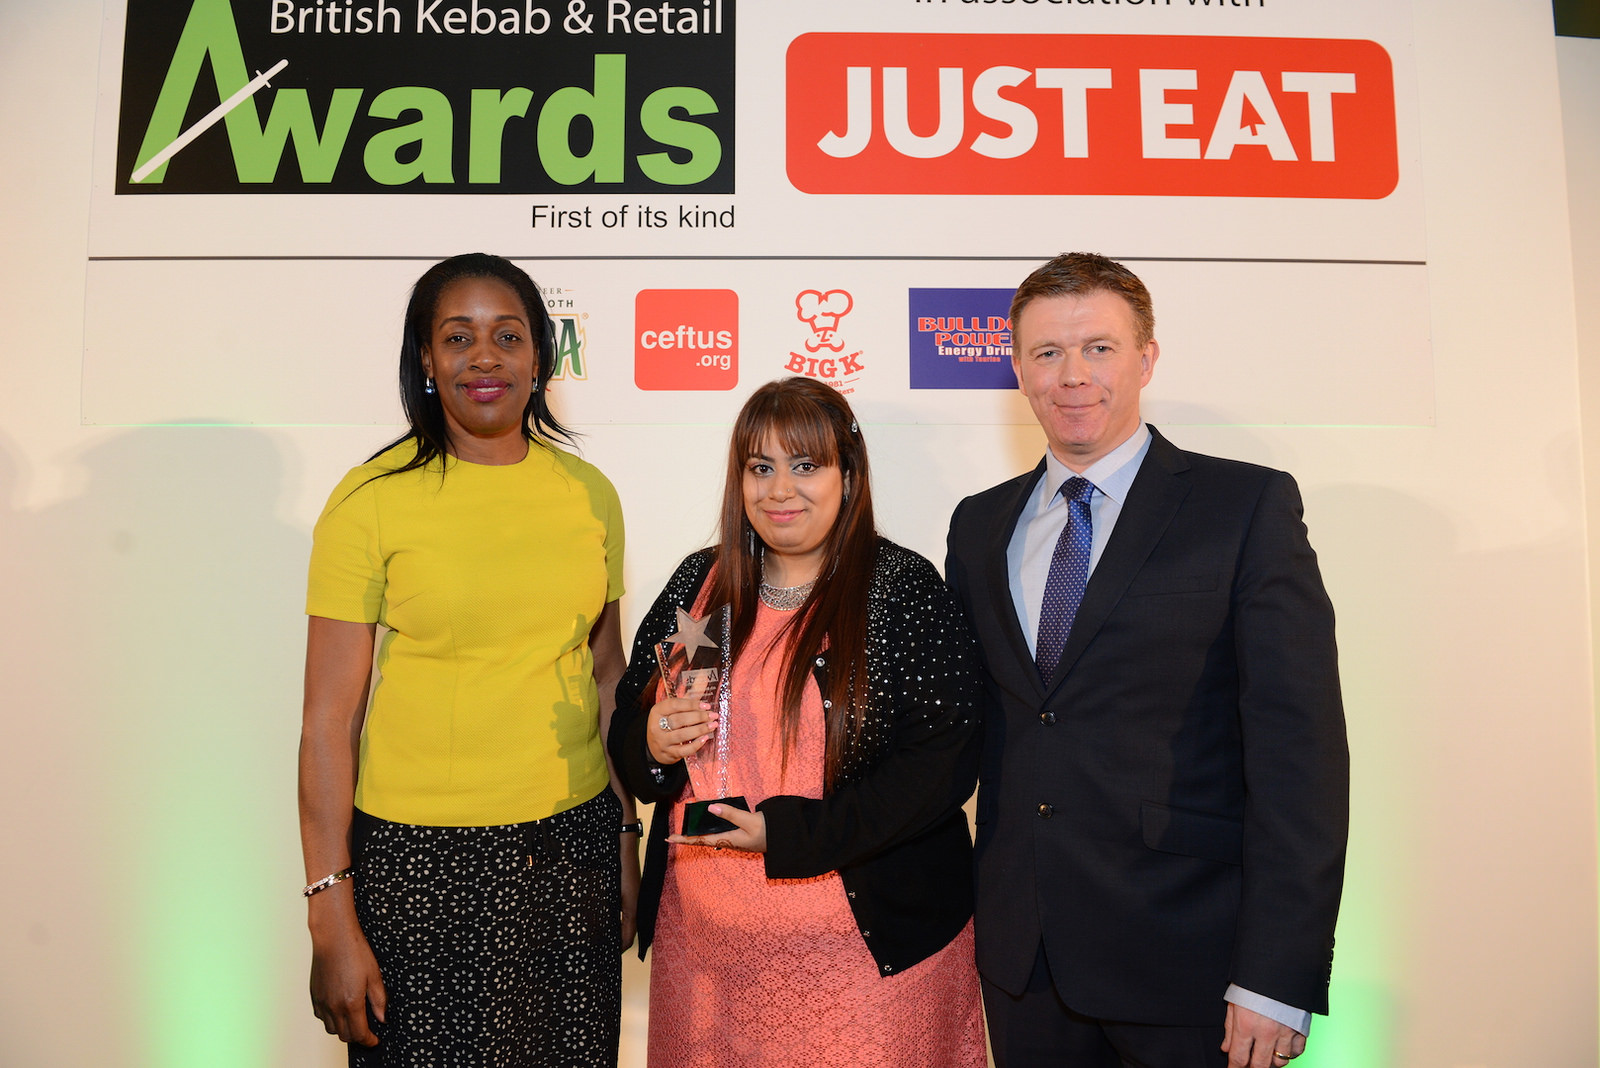 Nominations are now open for the 5th British Kebab Awards